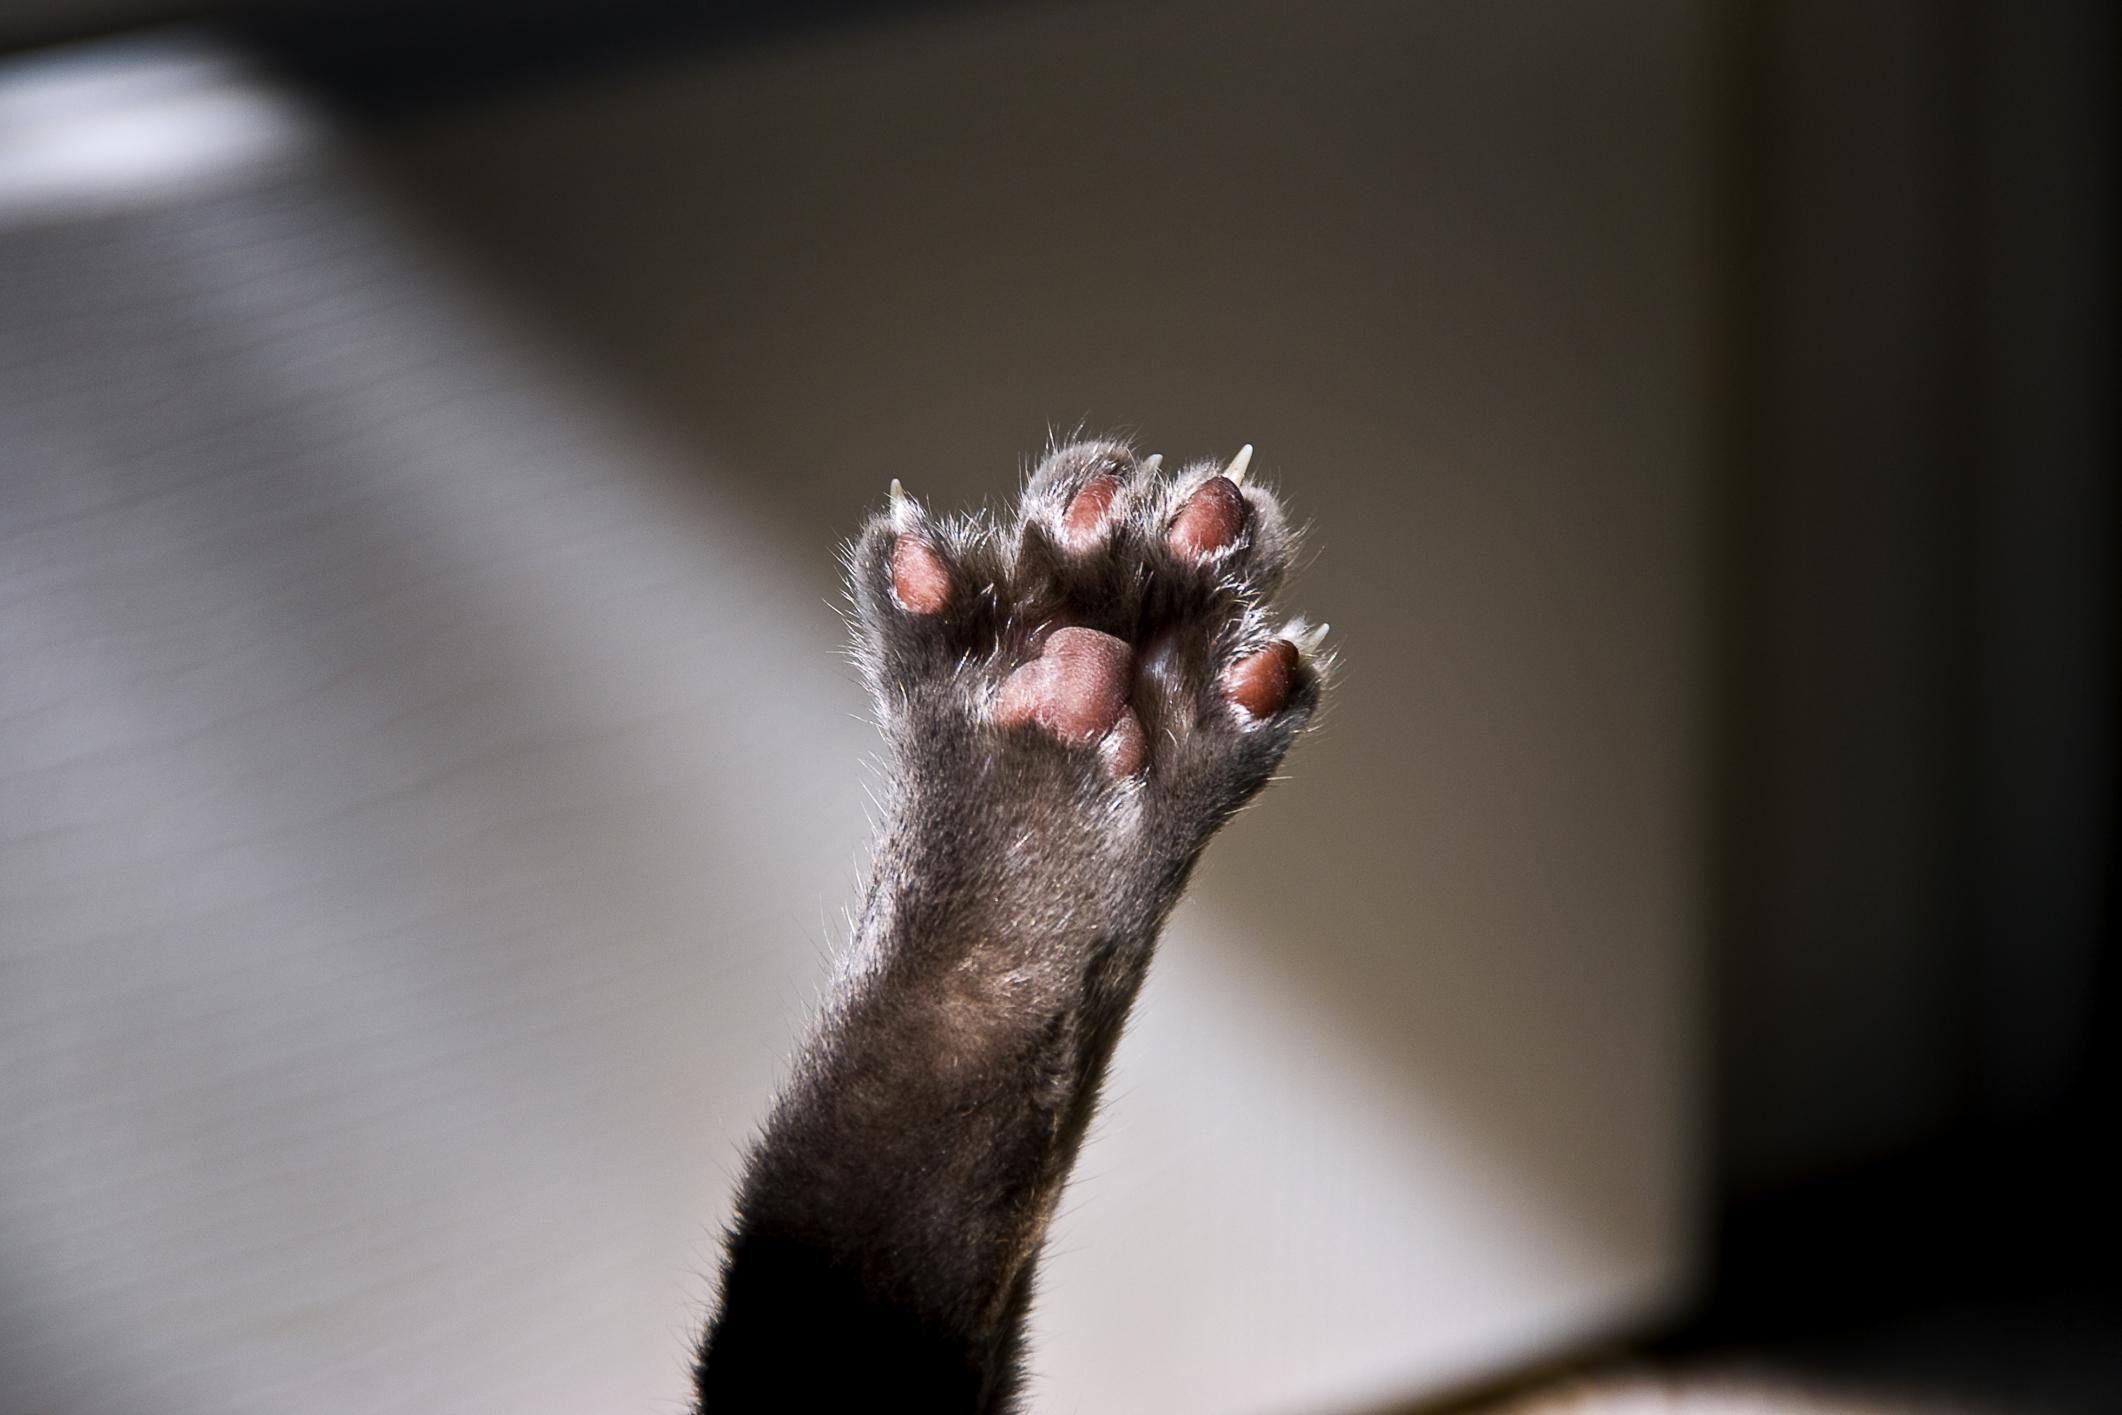 Cat's paw raised in air